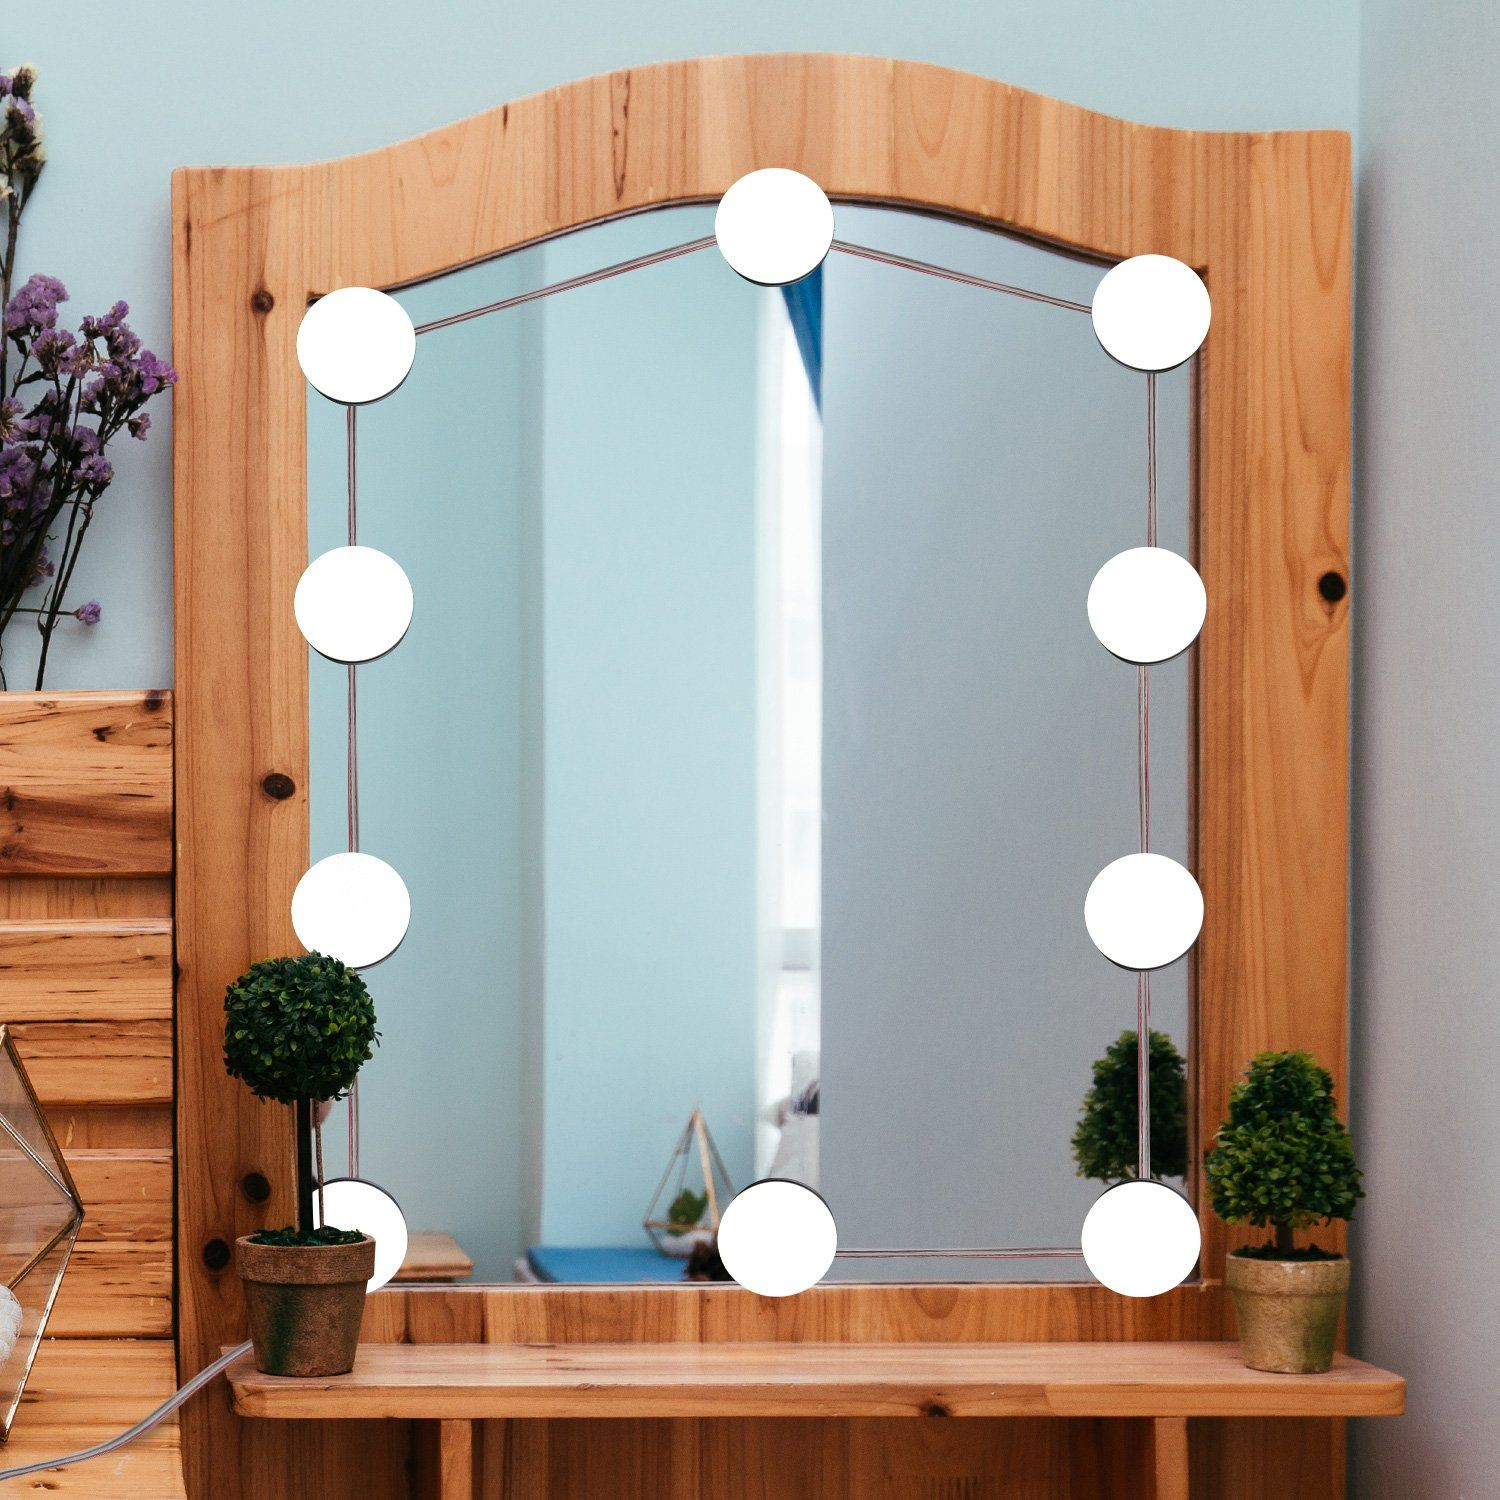 Yifitek hollywood style led vanity mirror lights kit with